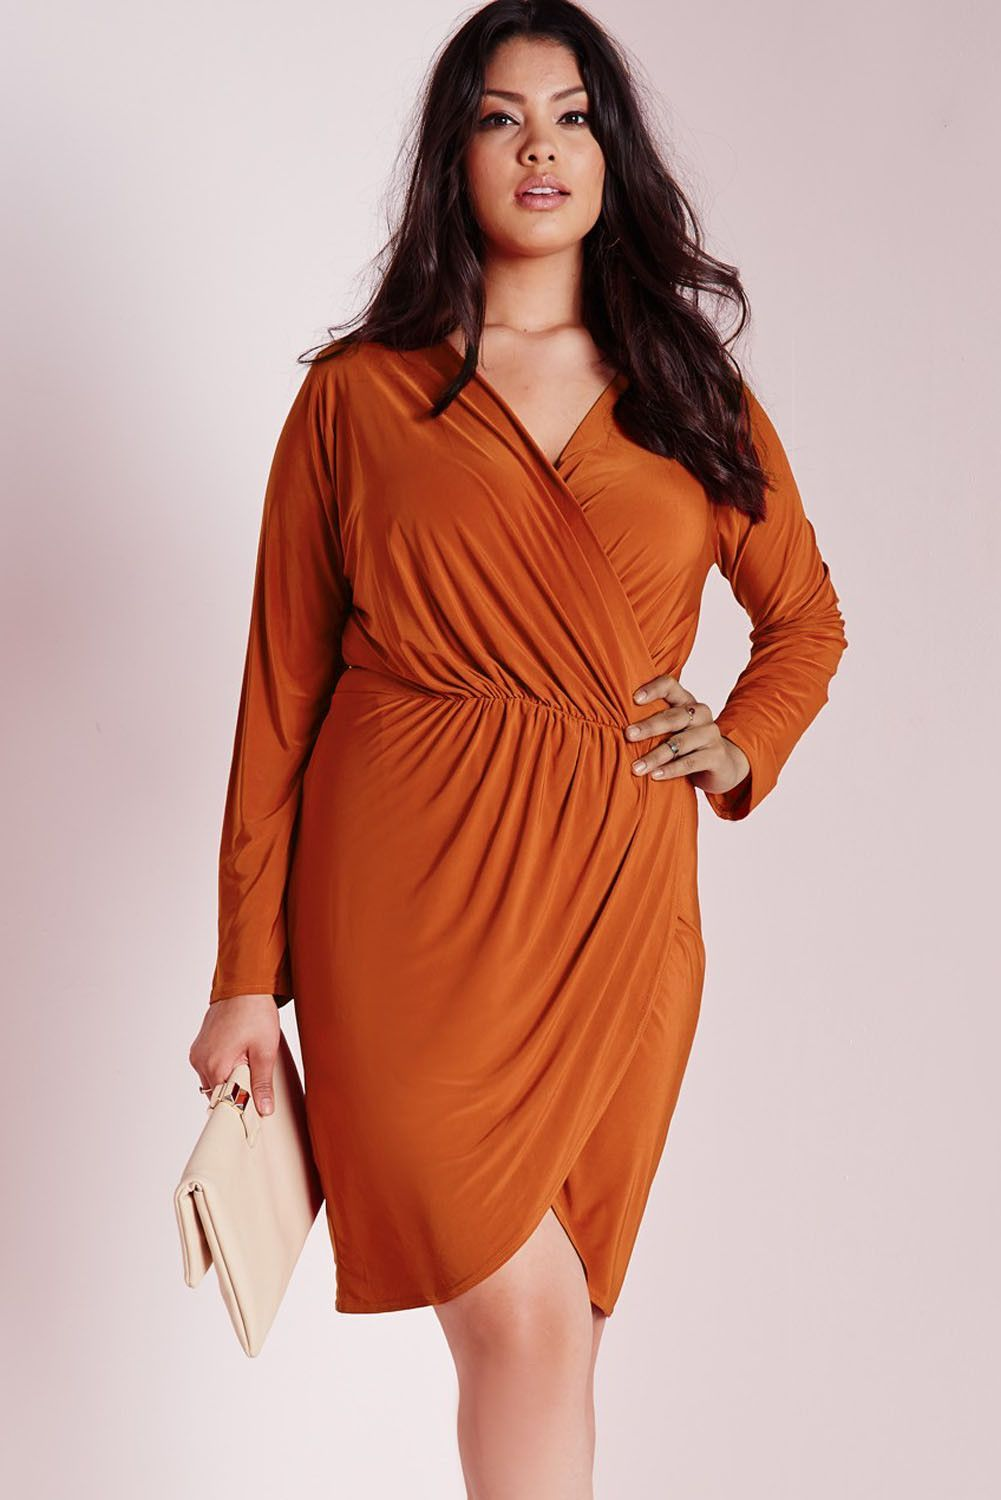 99ad86912e63 Work this seriously flattering wrap dress and rock some sexy vibes this  season. In a